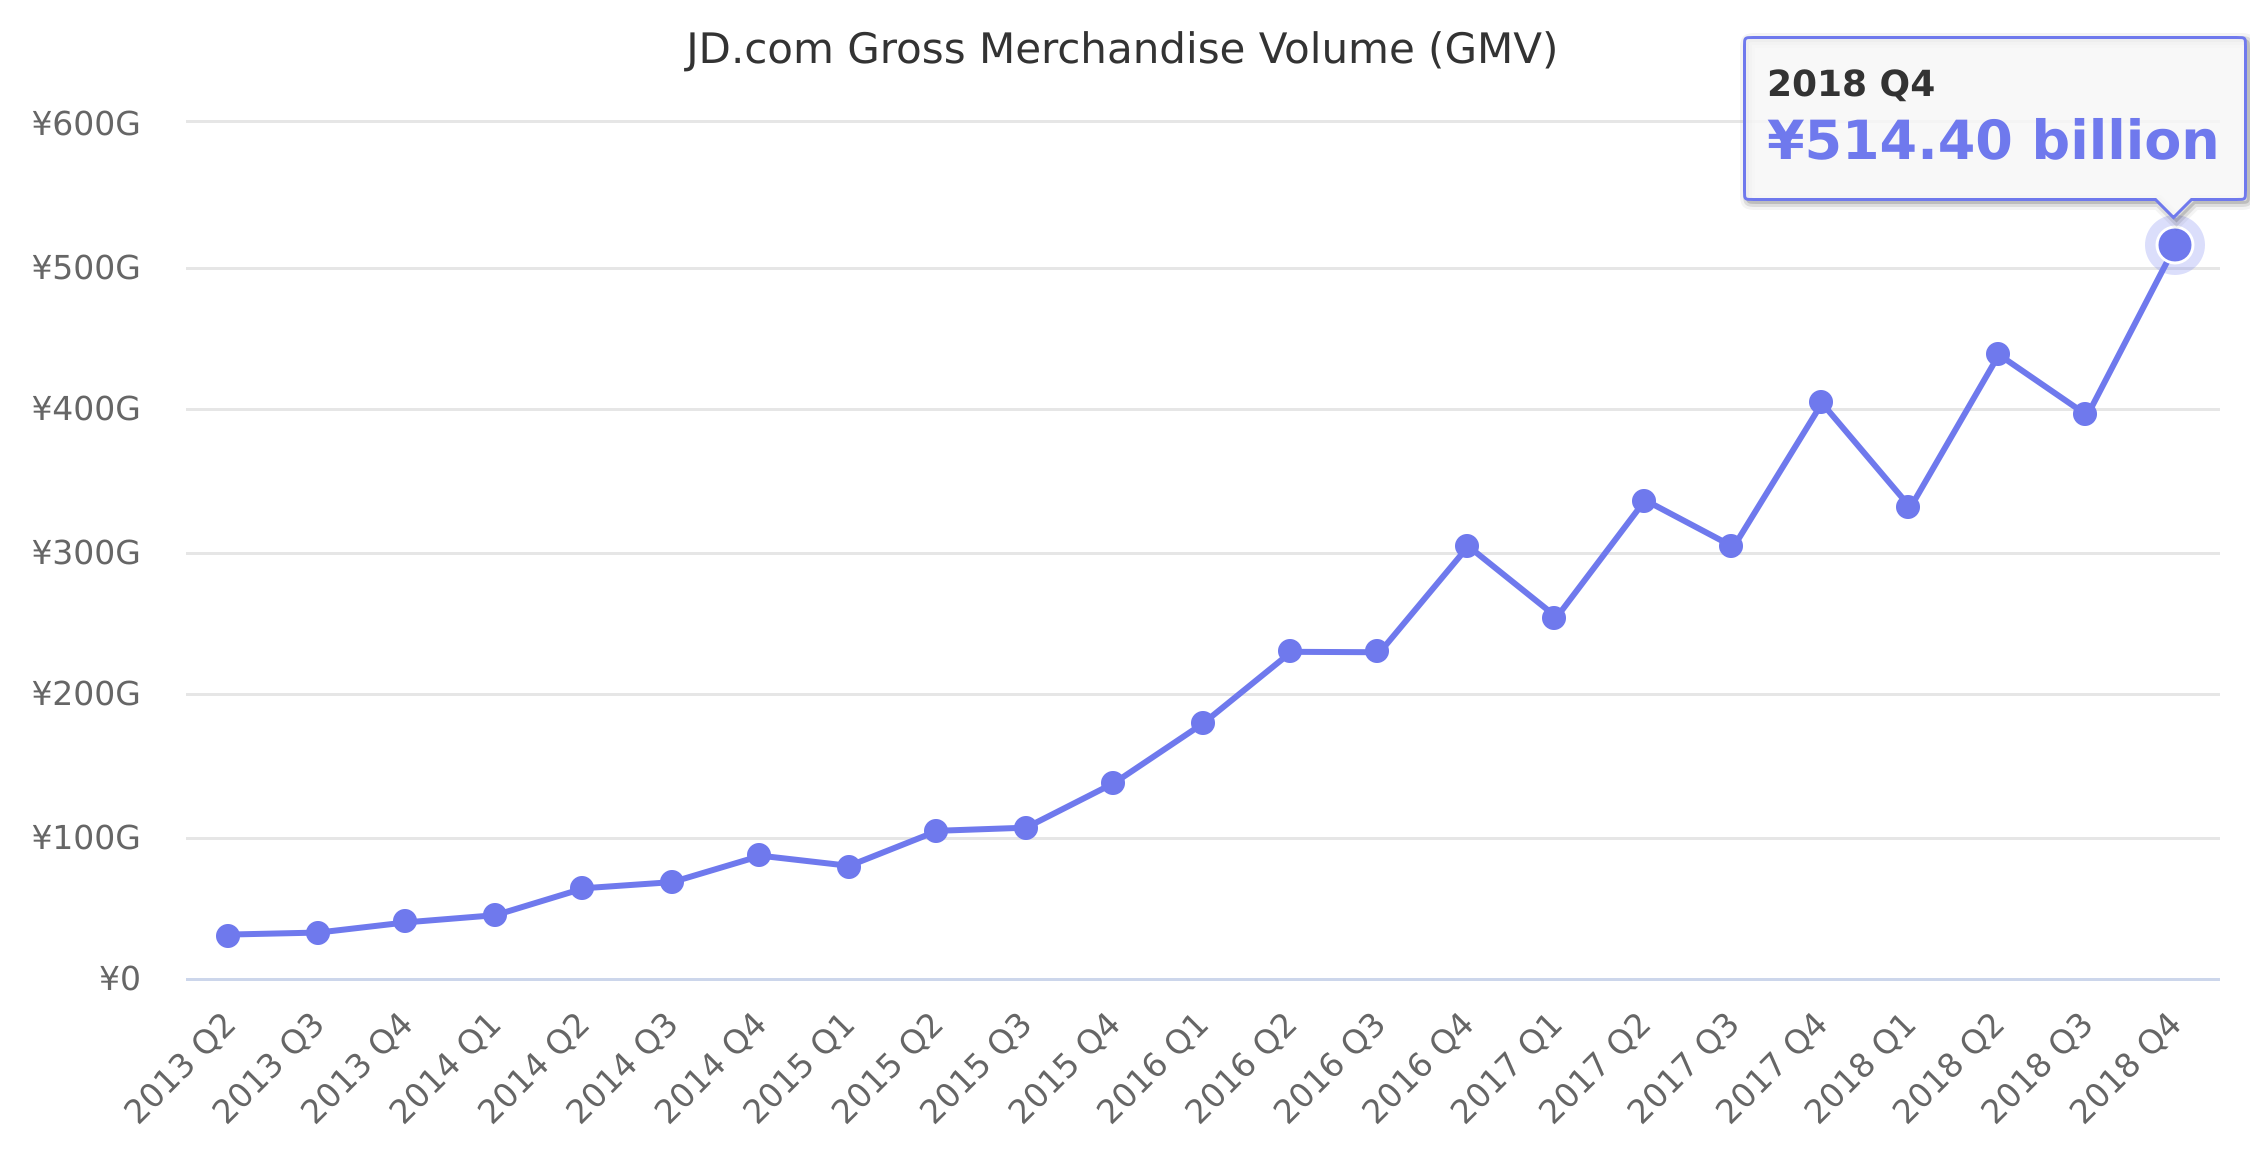 JD.com Gross Merchandise Volume (GMV) 2013-2018